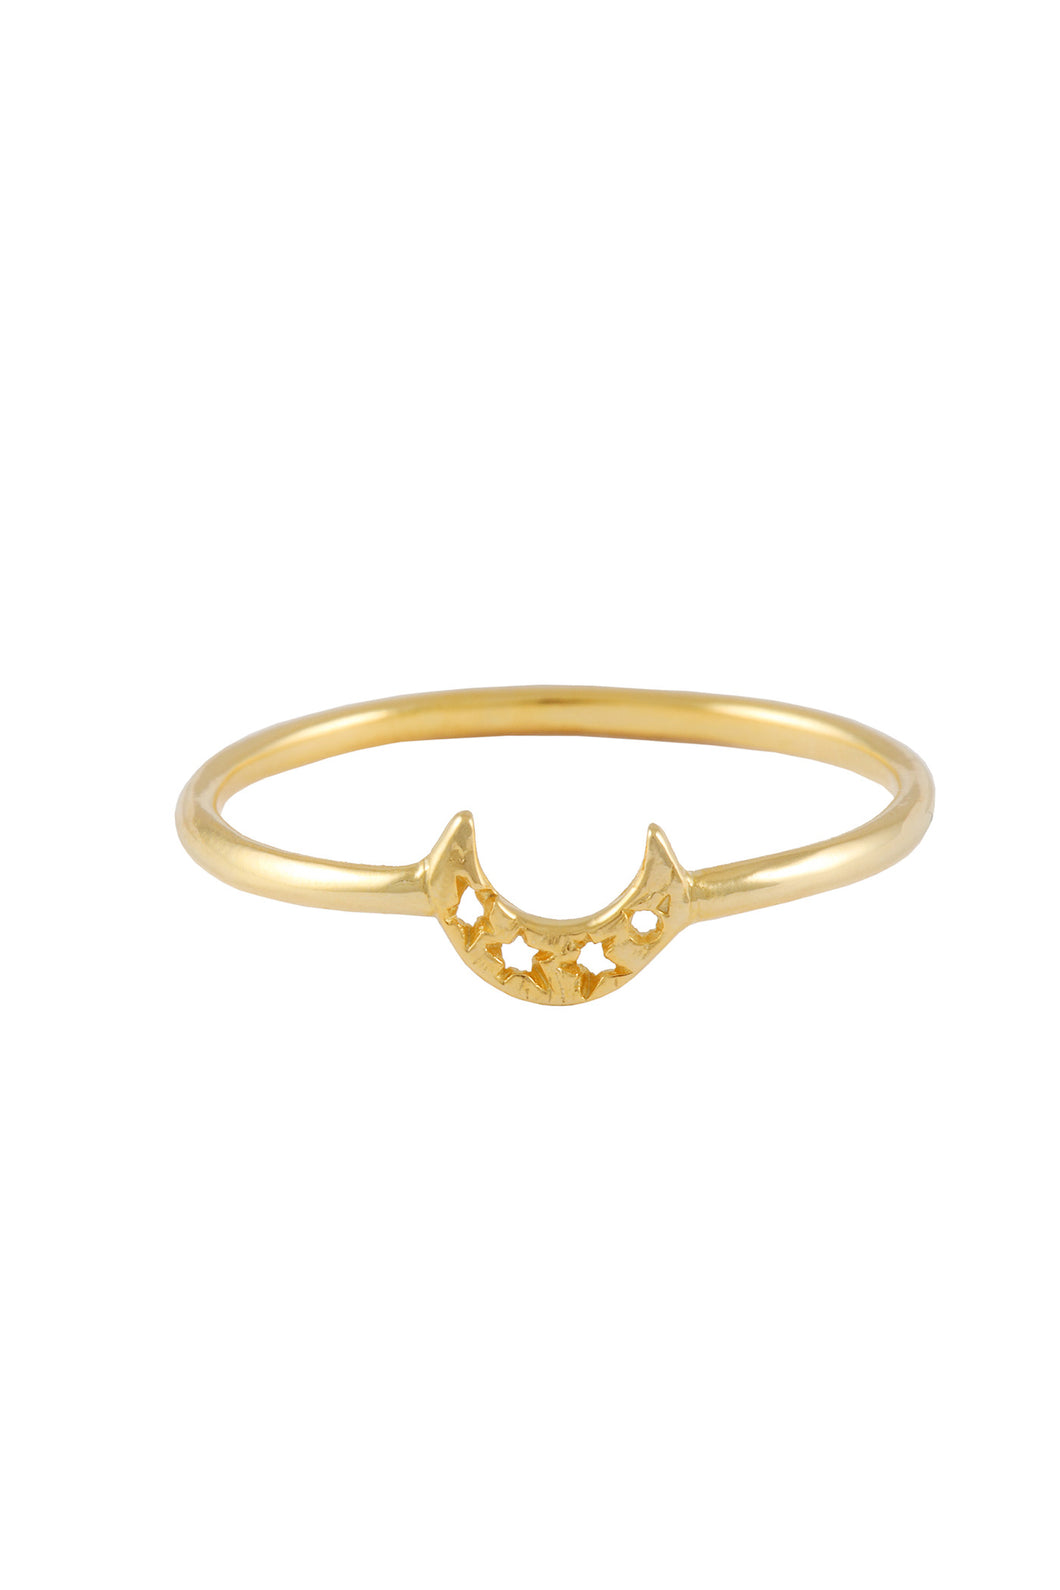 Small crescent moon thin ring. Silver, gold plated.